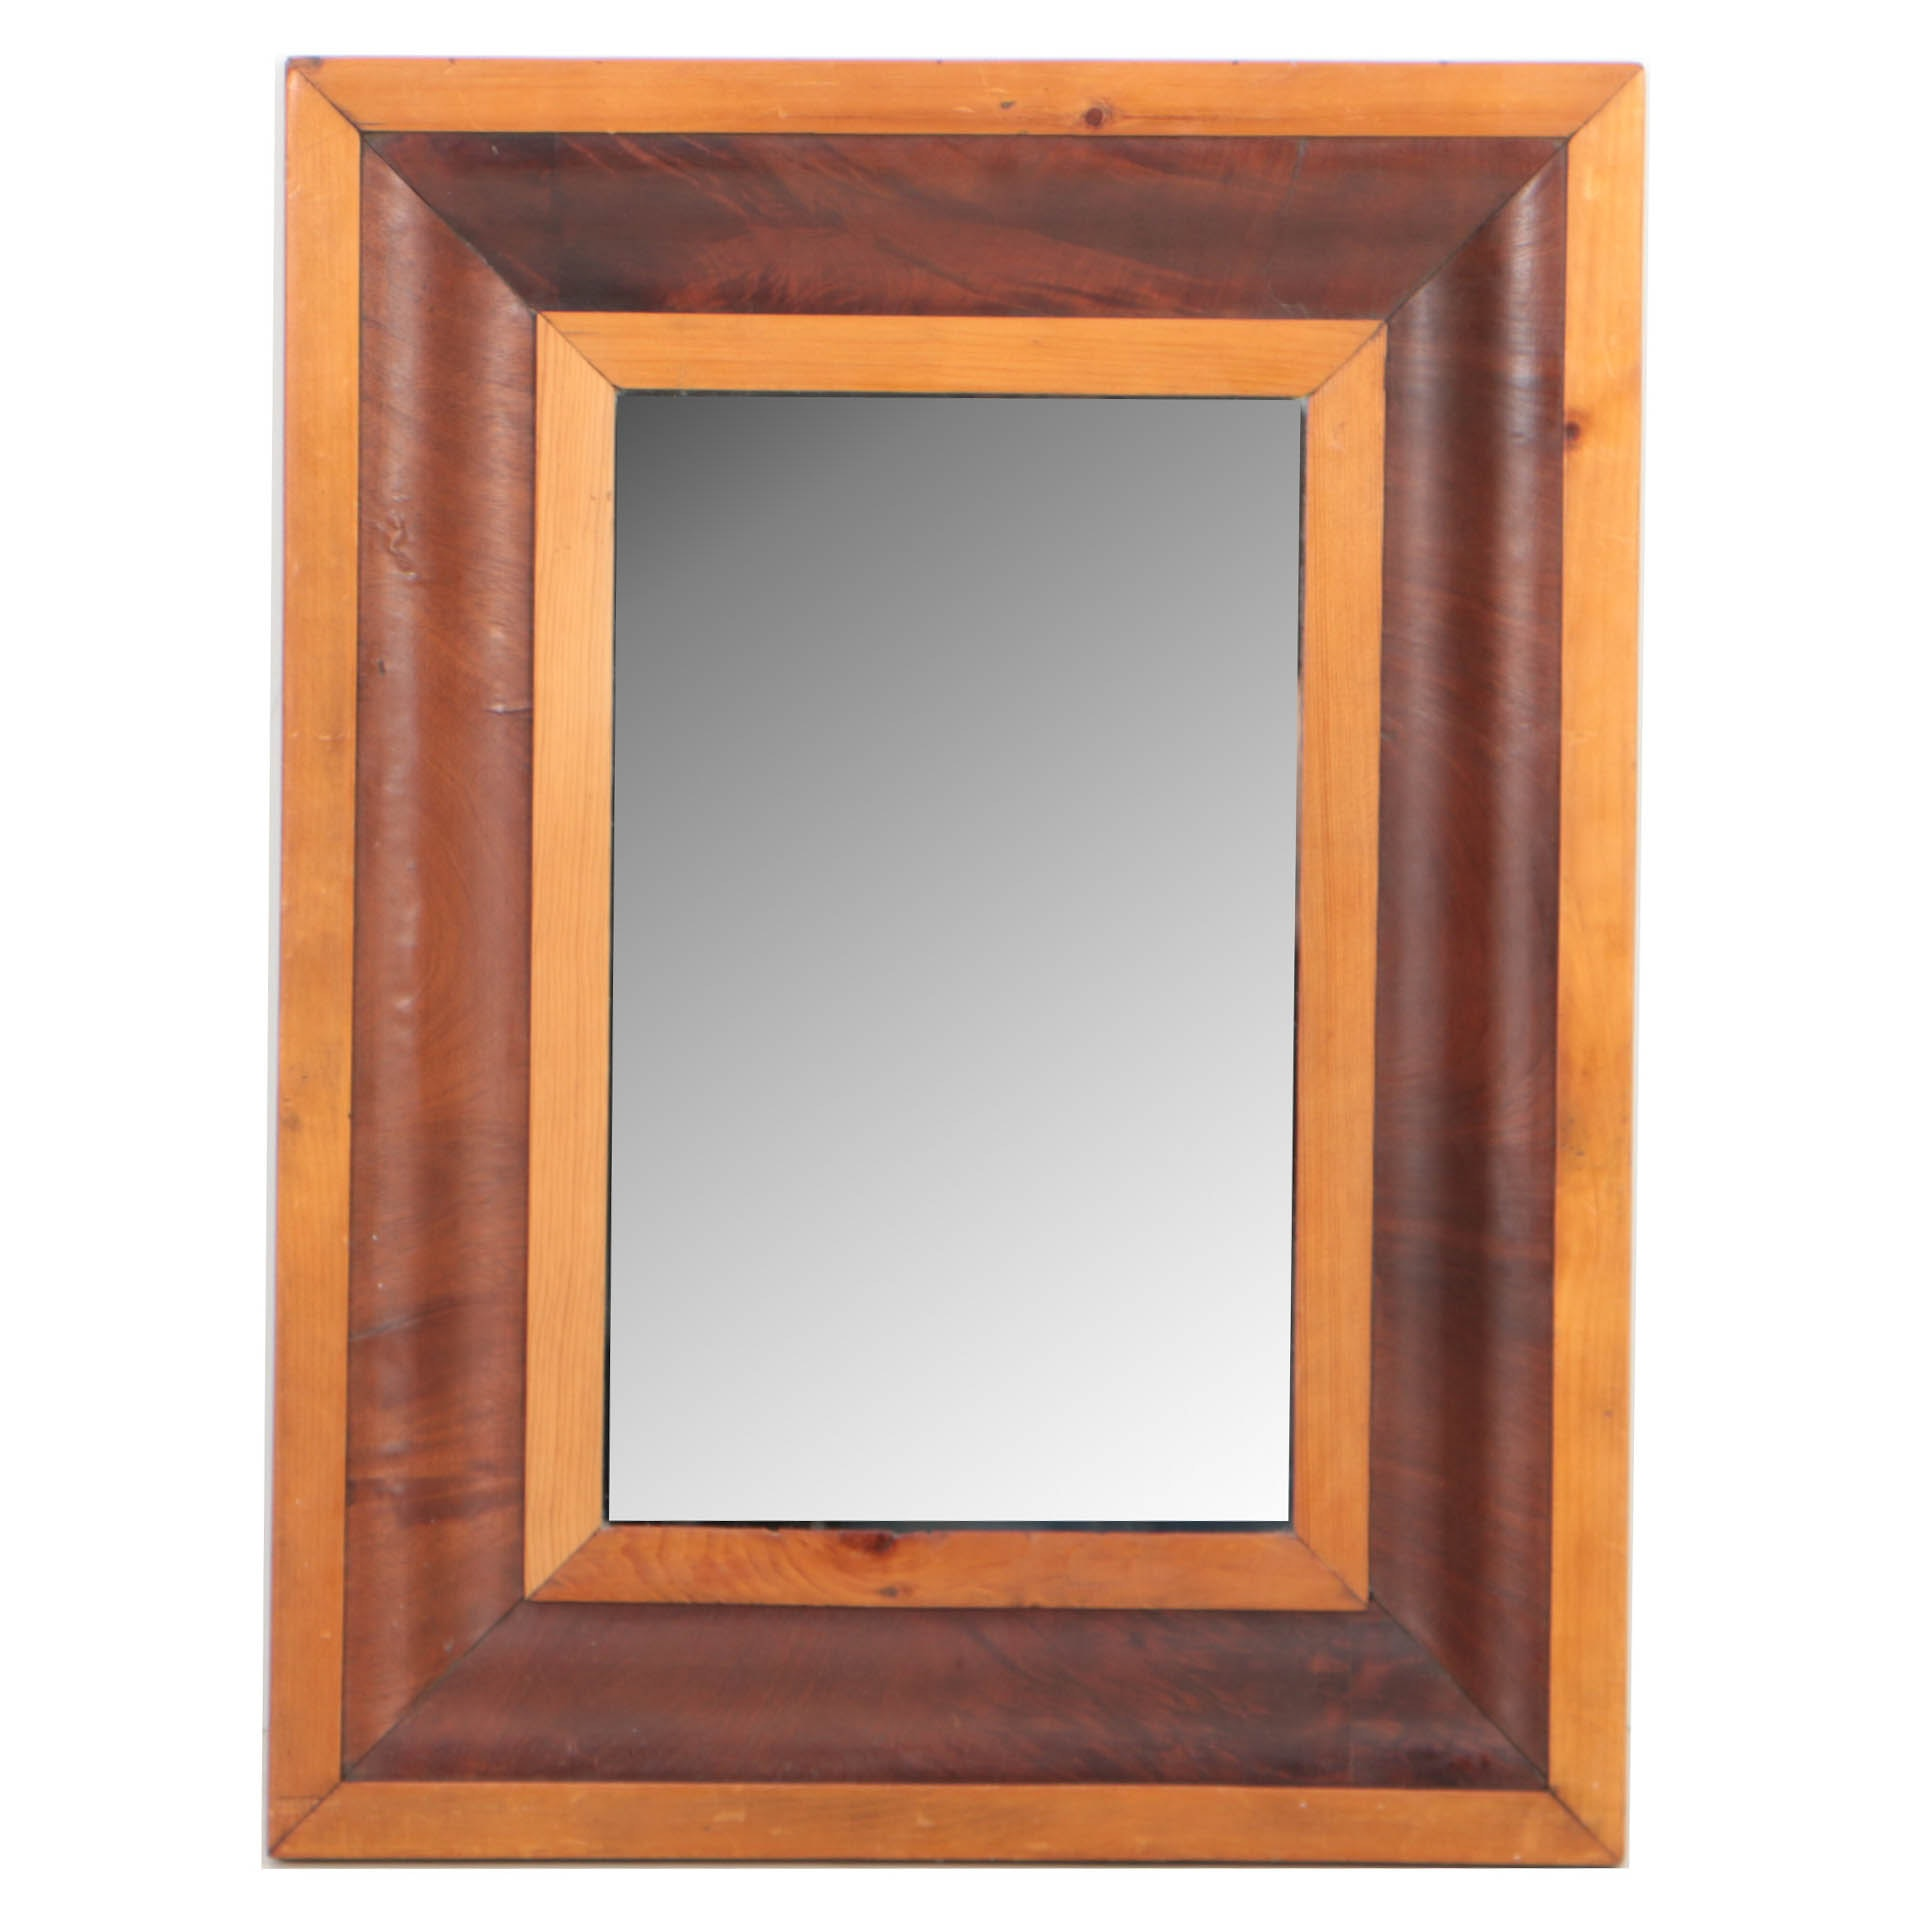 American Mahogany and Pine Picture Frame Mirror, Mid-19th Century and later